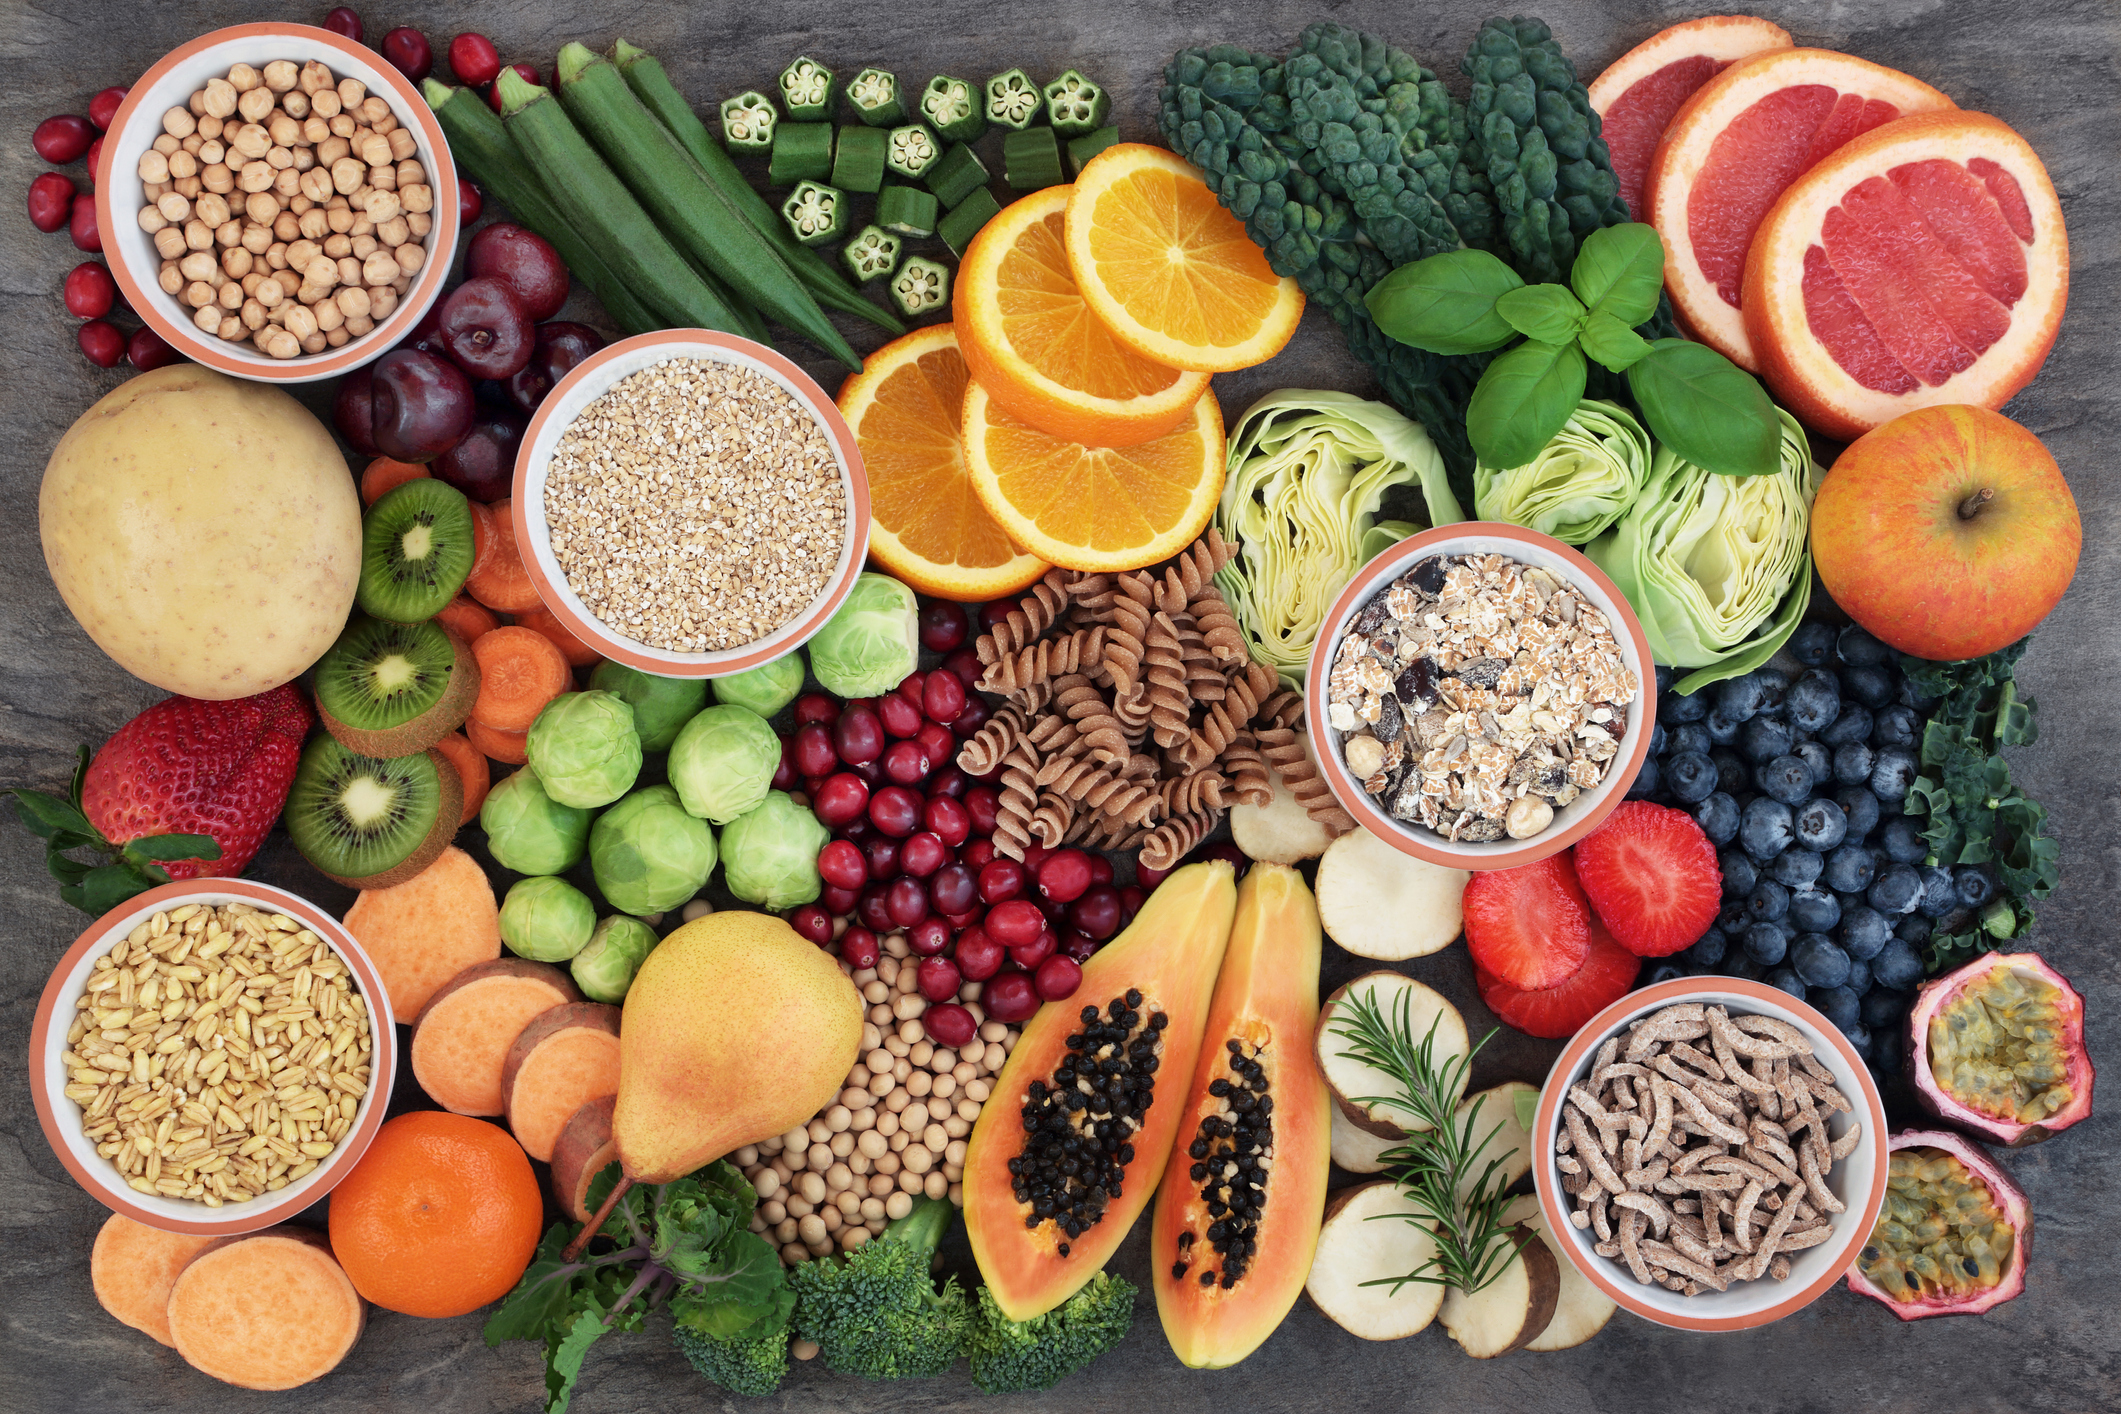 Plant-based foods. Fruits, vegetables, nuts, and grains.